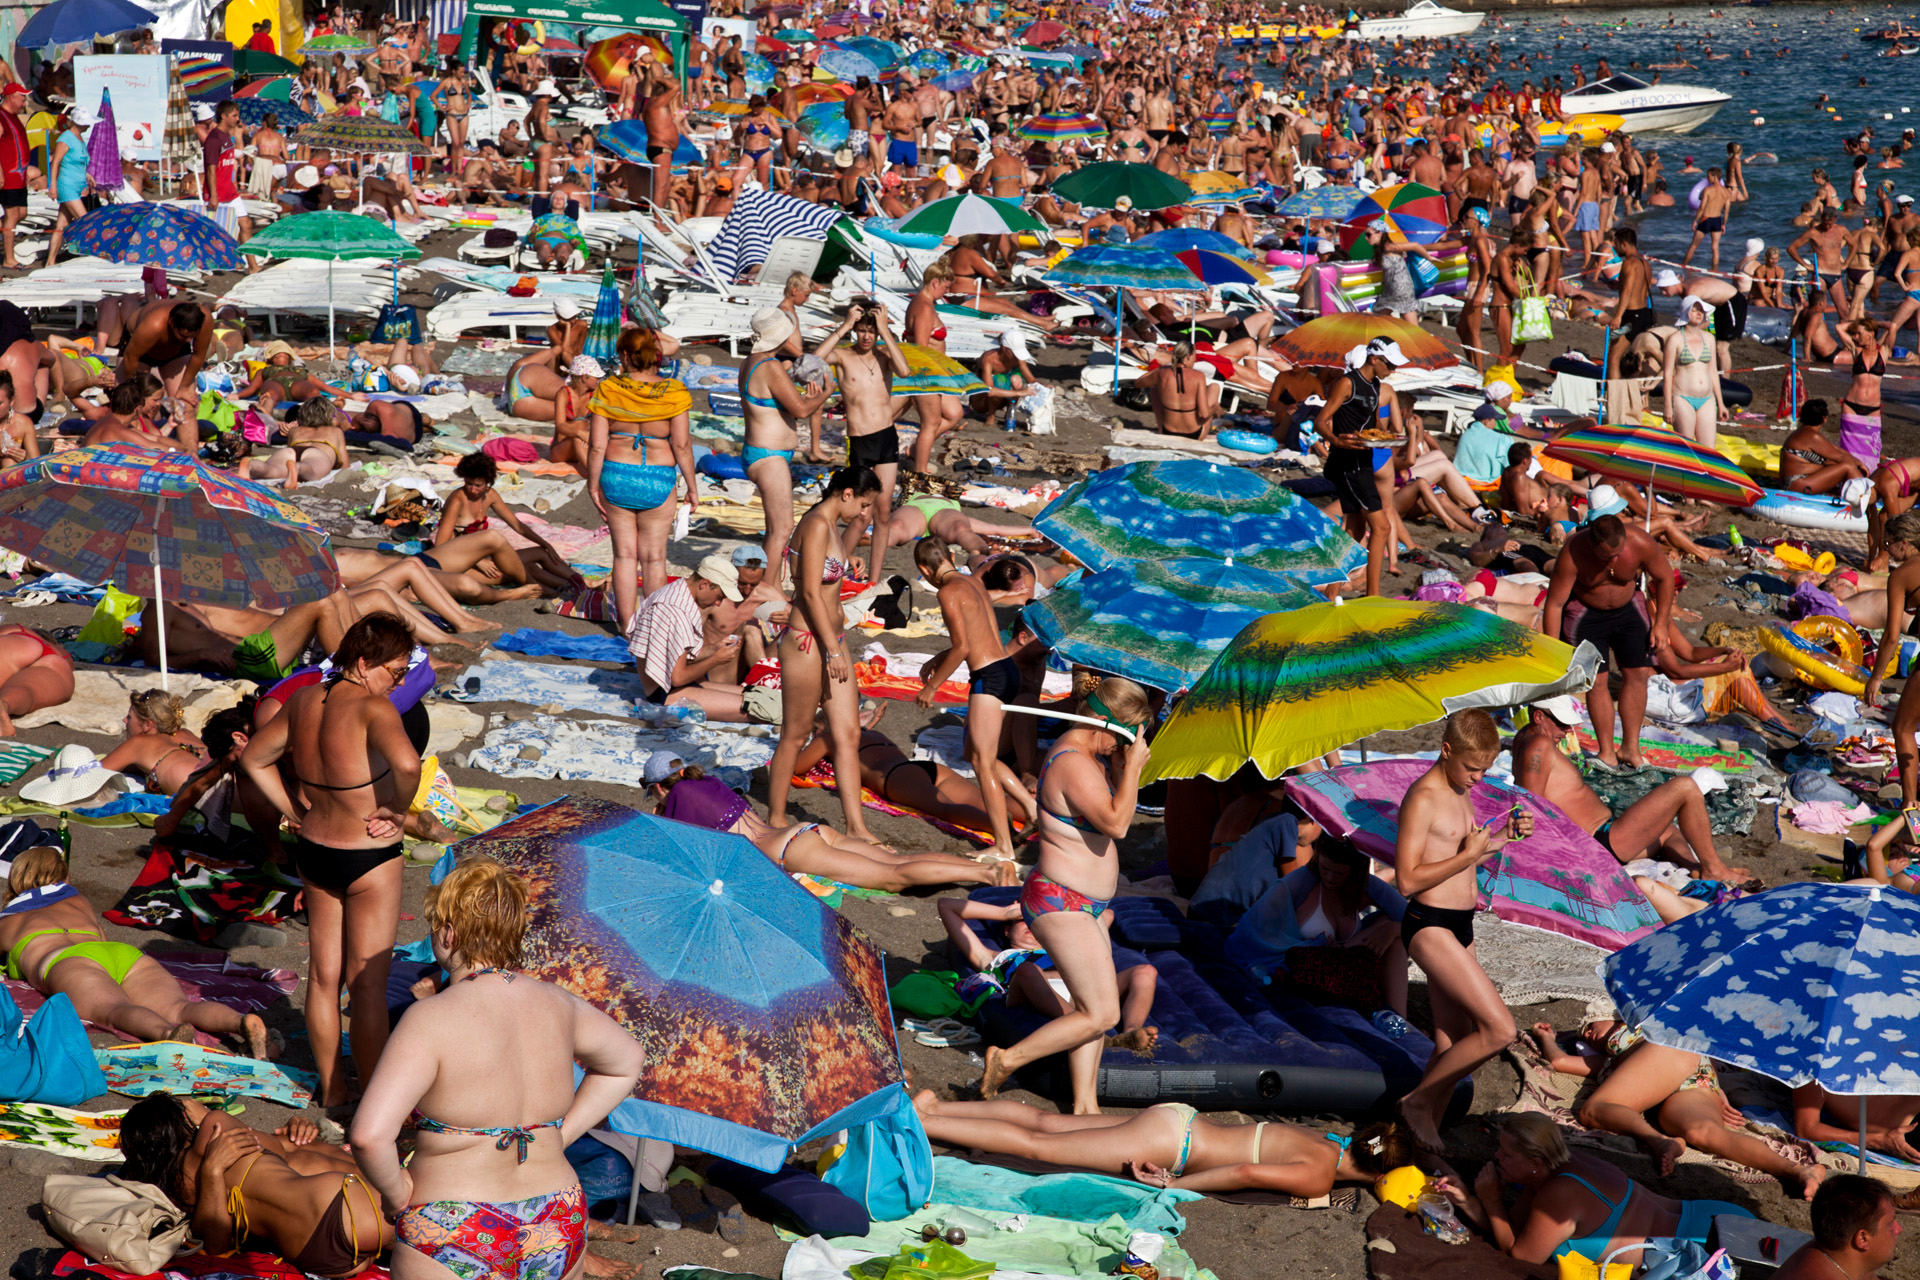 Sun, sand and sea are the payoffs for six million tourists a year who crowd like this one in Sudak.  Sudak, Crimea